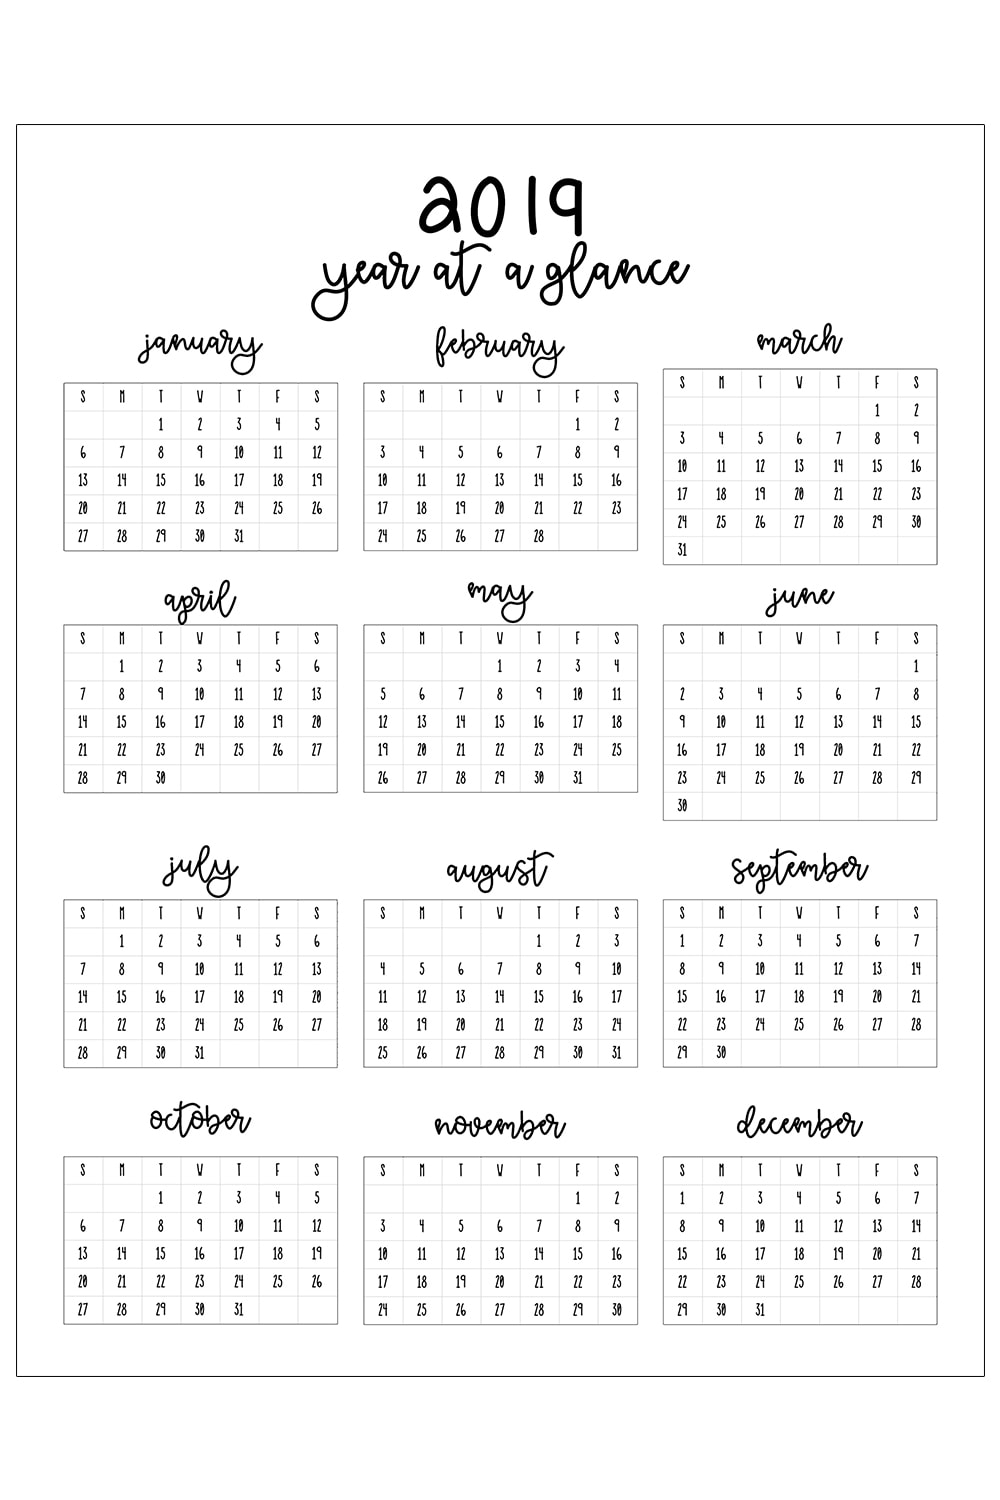 photo regarding Printable Calendars Free named 2019 Printable Calendar